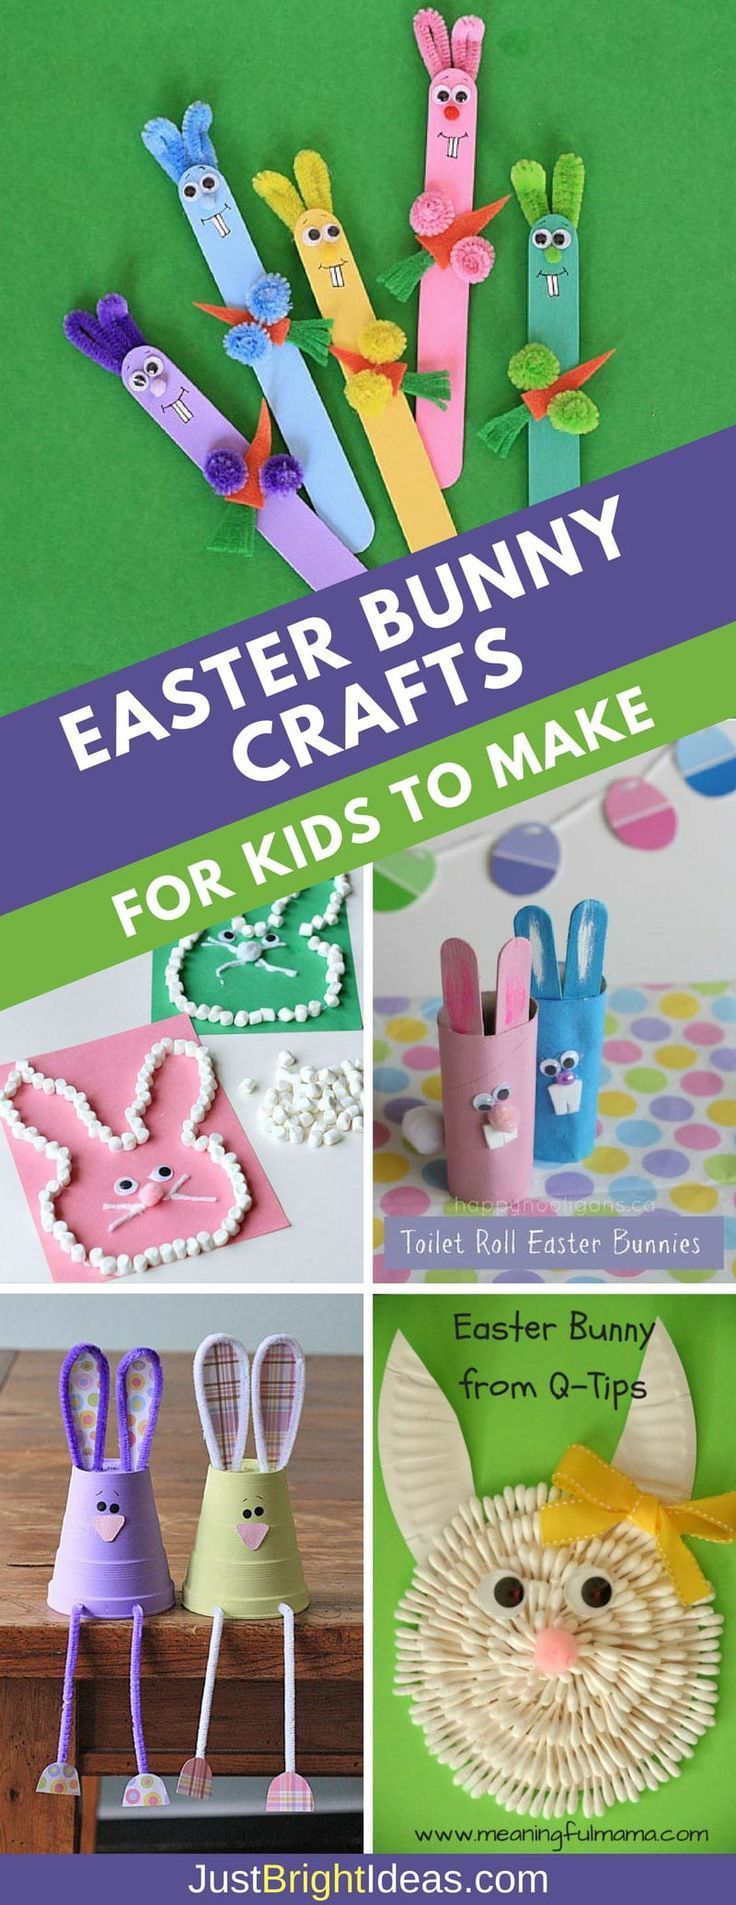 Hop Hop Hop like a Bunny! Don't miss these super cute Easter bunny crafts for kids to make - perfect for a Sunday afternoon of fun! Everything from craft sticks to toilet roll bunnies. You should have all the materials you need at home. #easter #kidcrafts